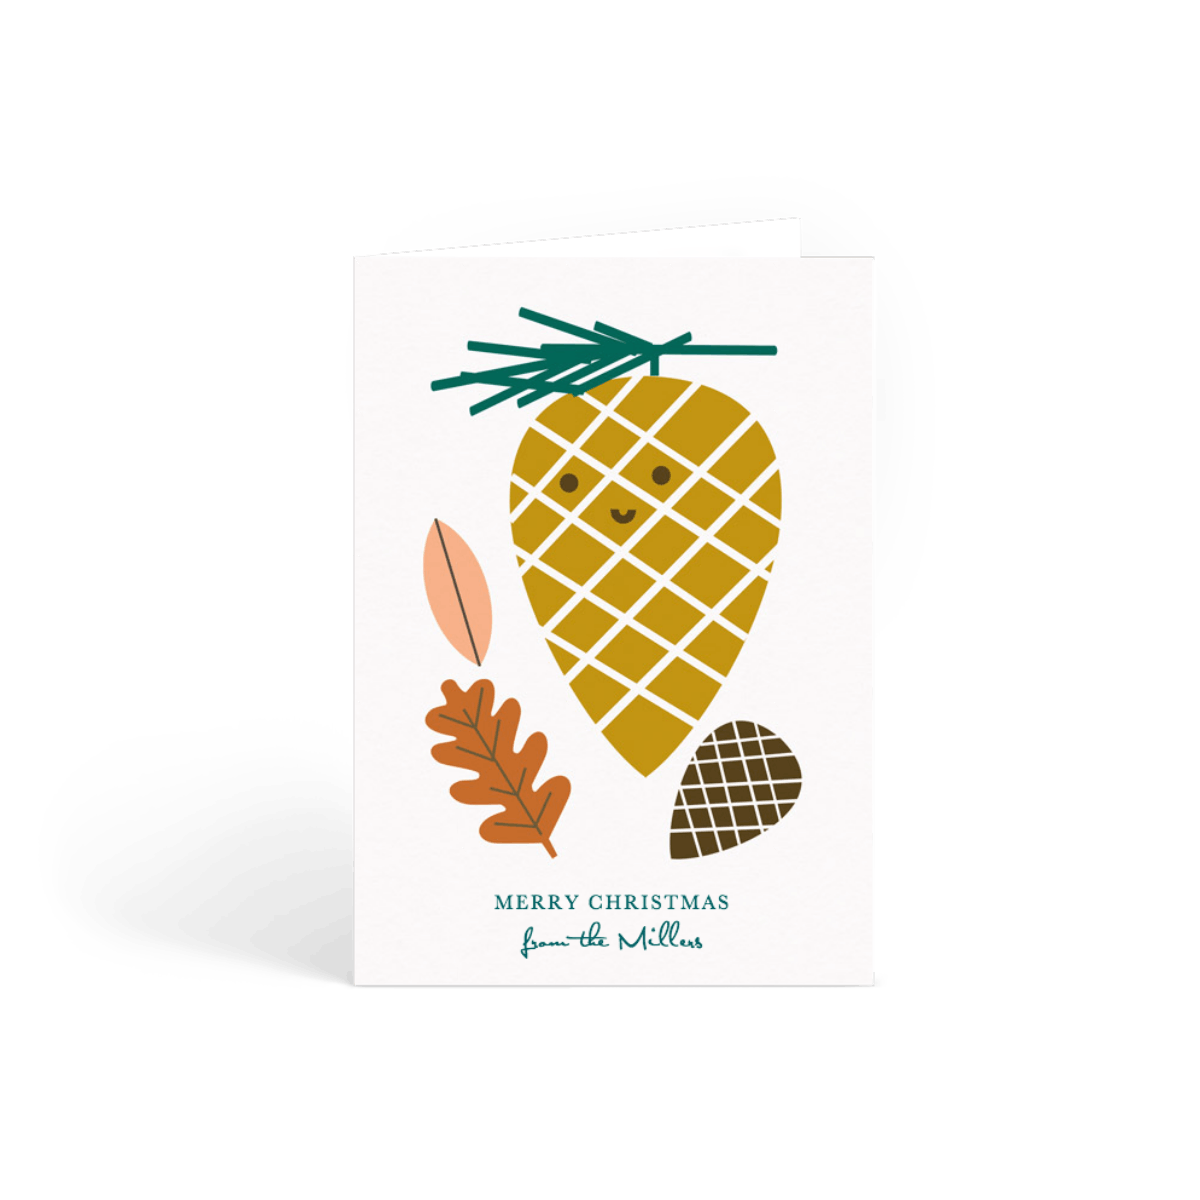 Https%3a%2f%2fwww.papier.com%2fproduct image%2f14307%2f2%2fhappy pine cone 3822 front 1501749204.png?ixlib=rb 1.1